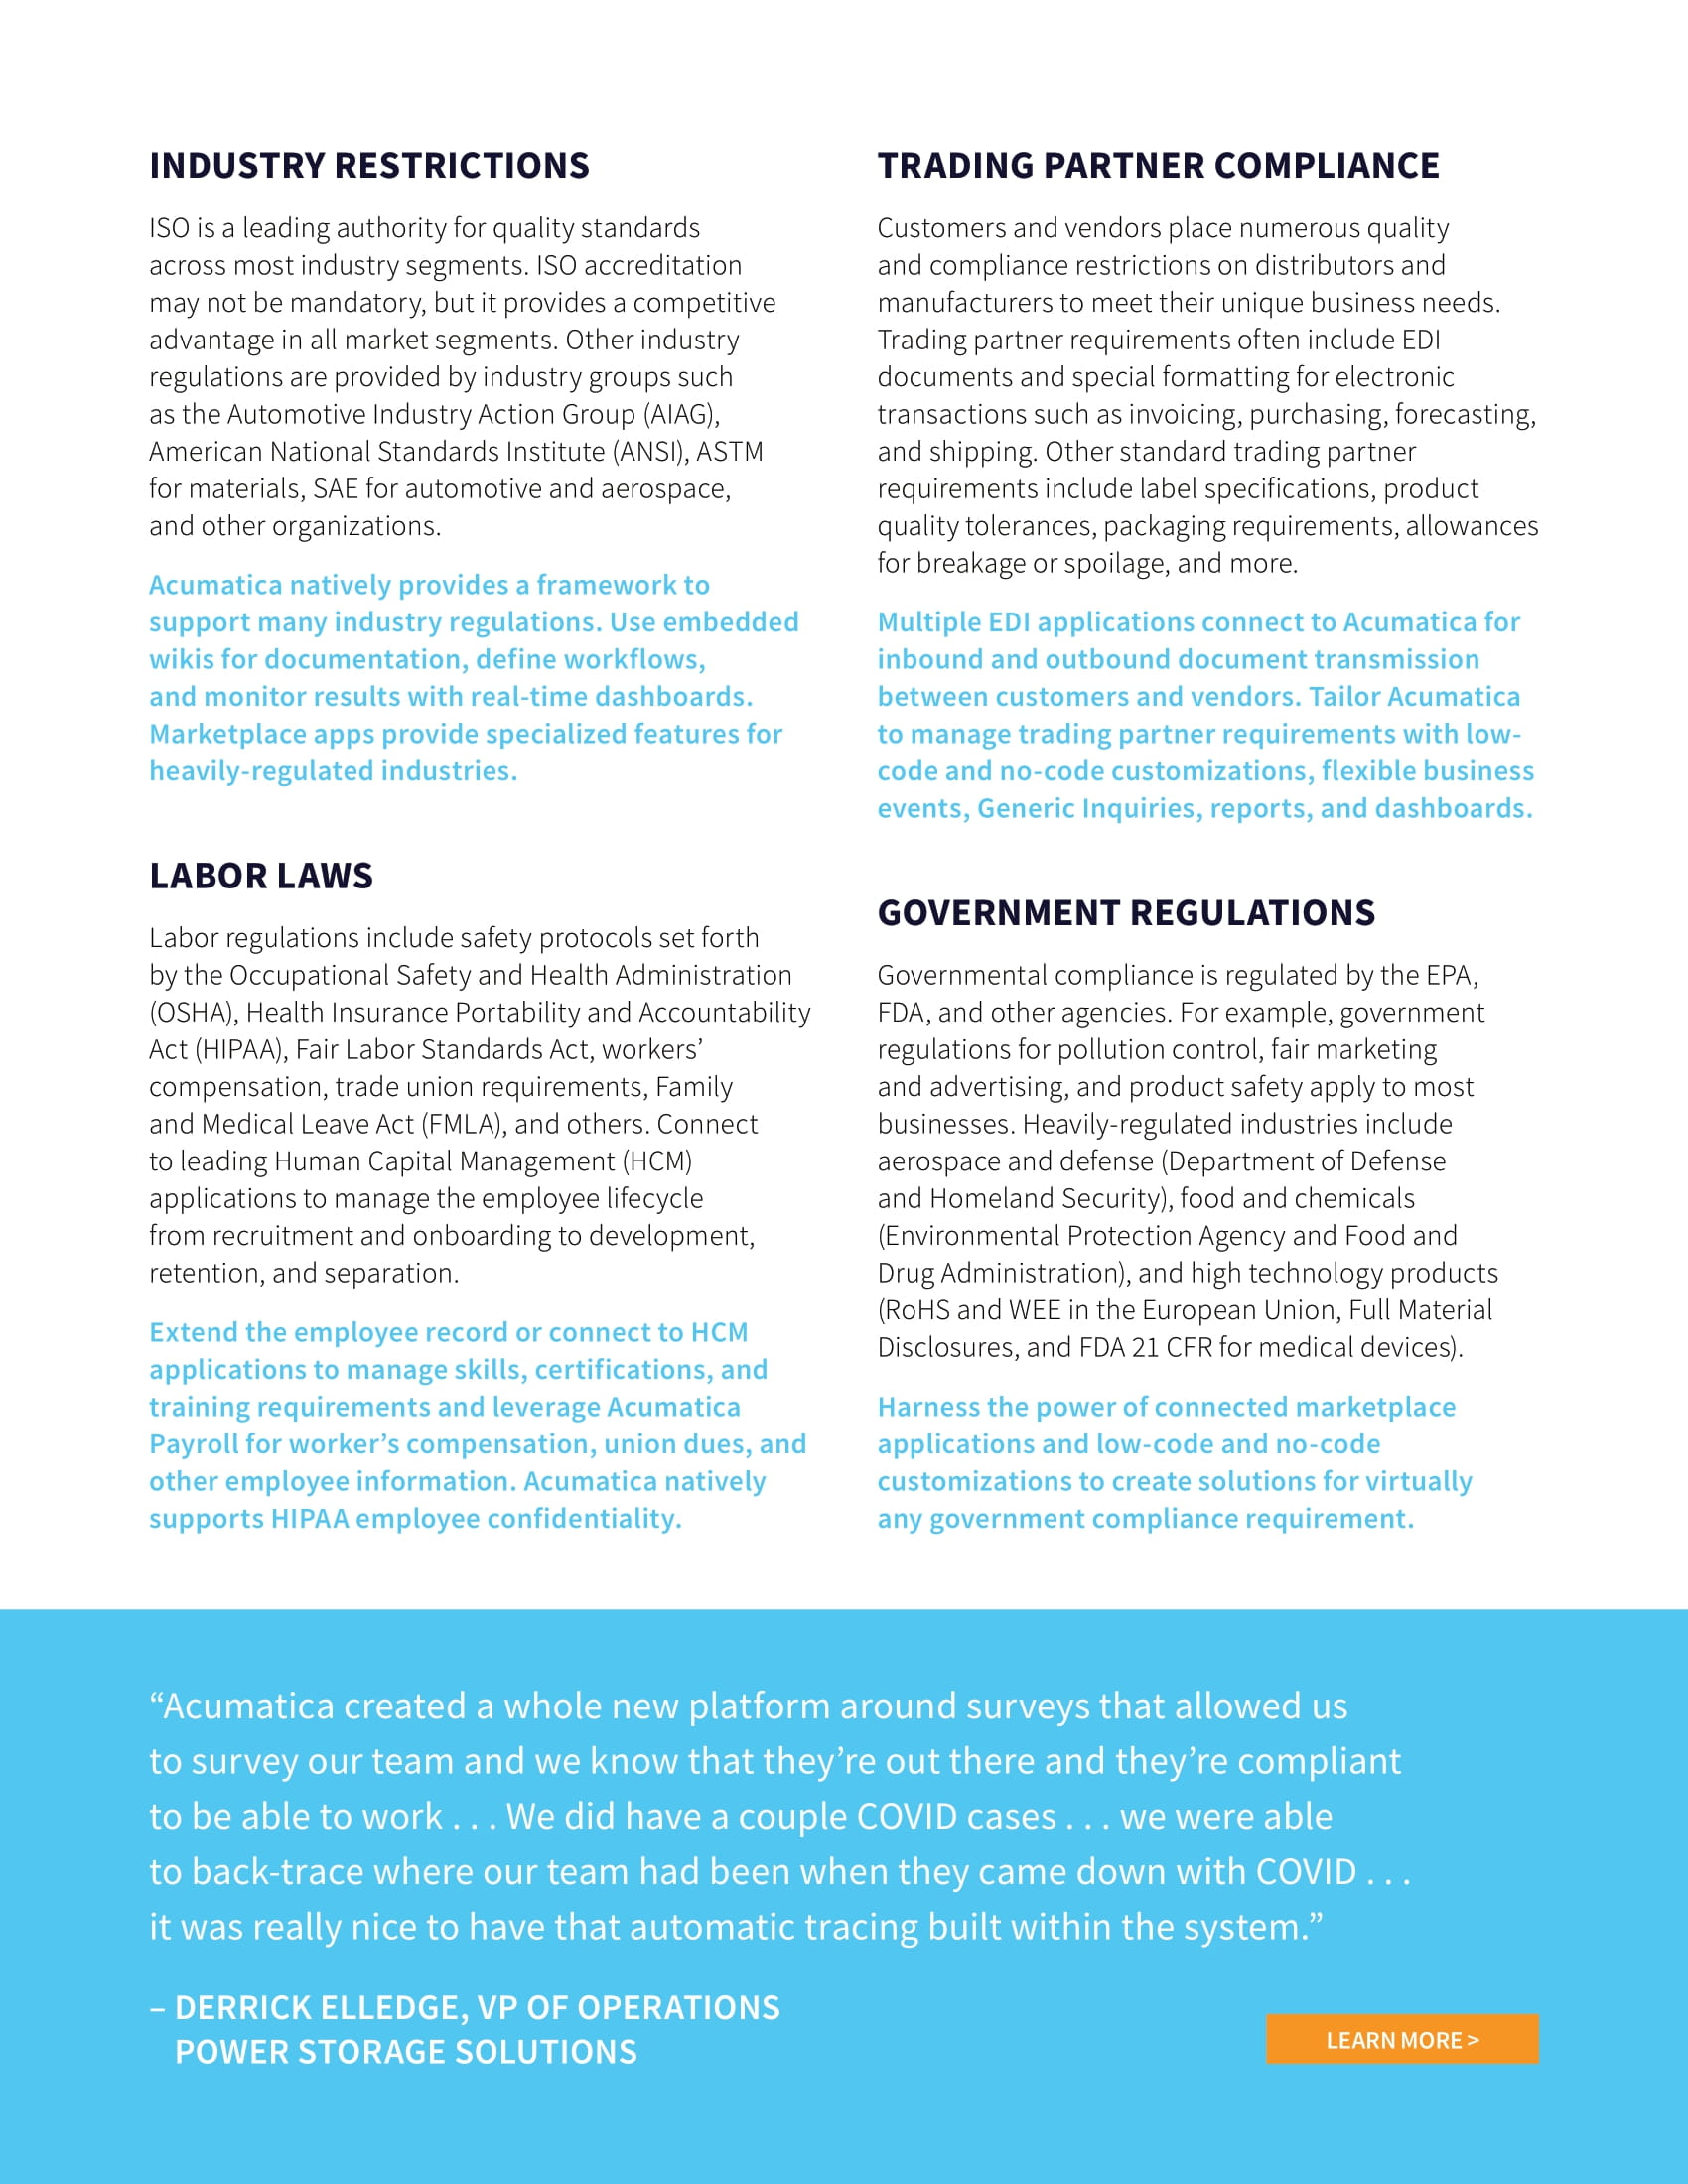 Quality Compliance Software Made Simple, page 2